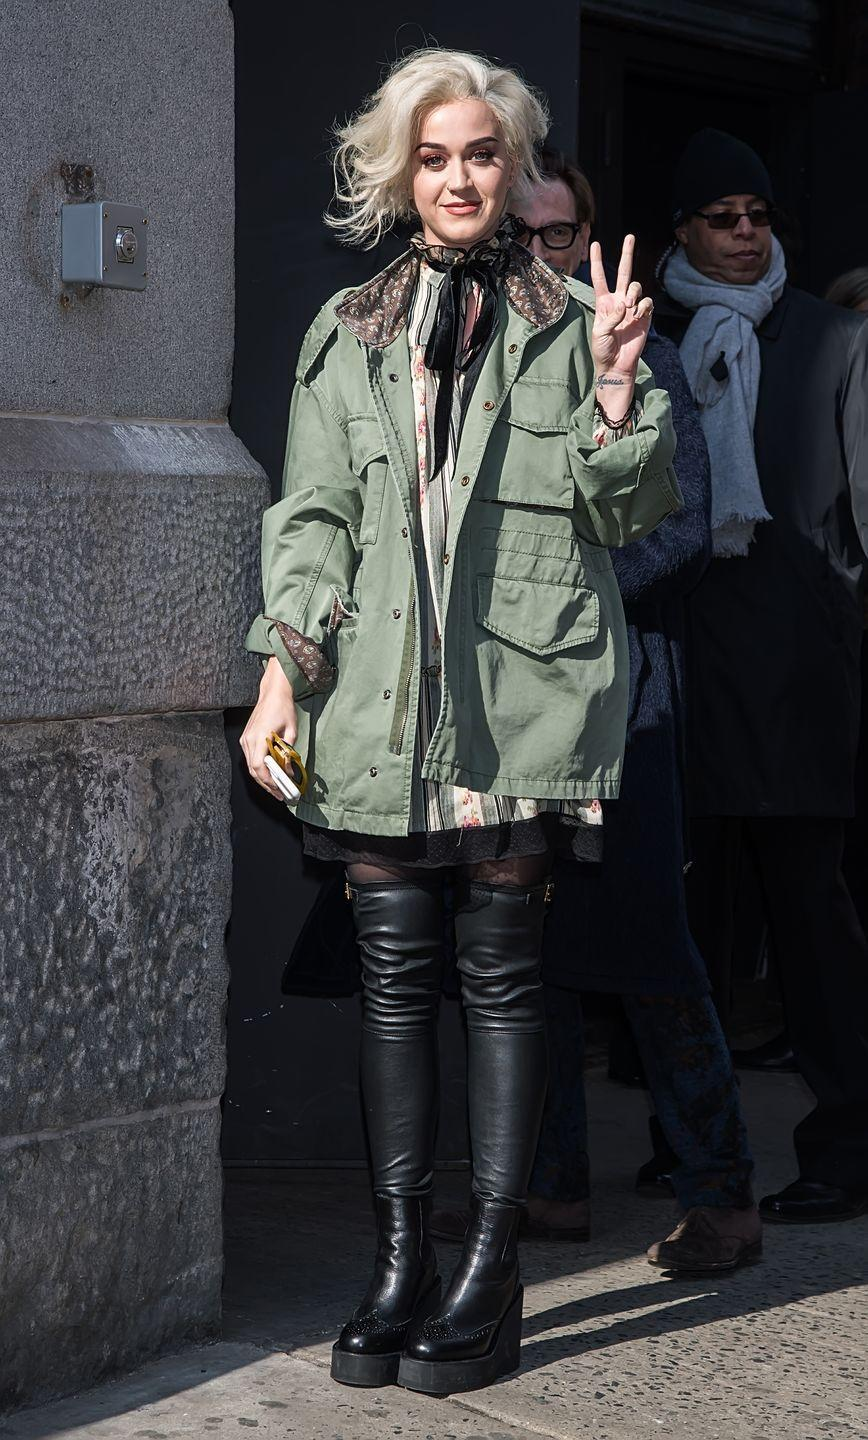 <p>Katy Perry is seen arriving at the Marc Jacobs Fall 2017 Show at Park Avenue Armory on February 16, 2017 in New York City.</p>